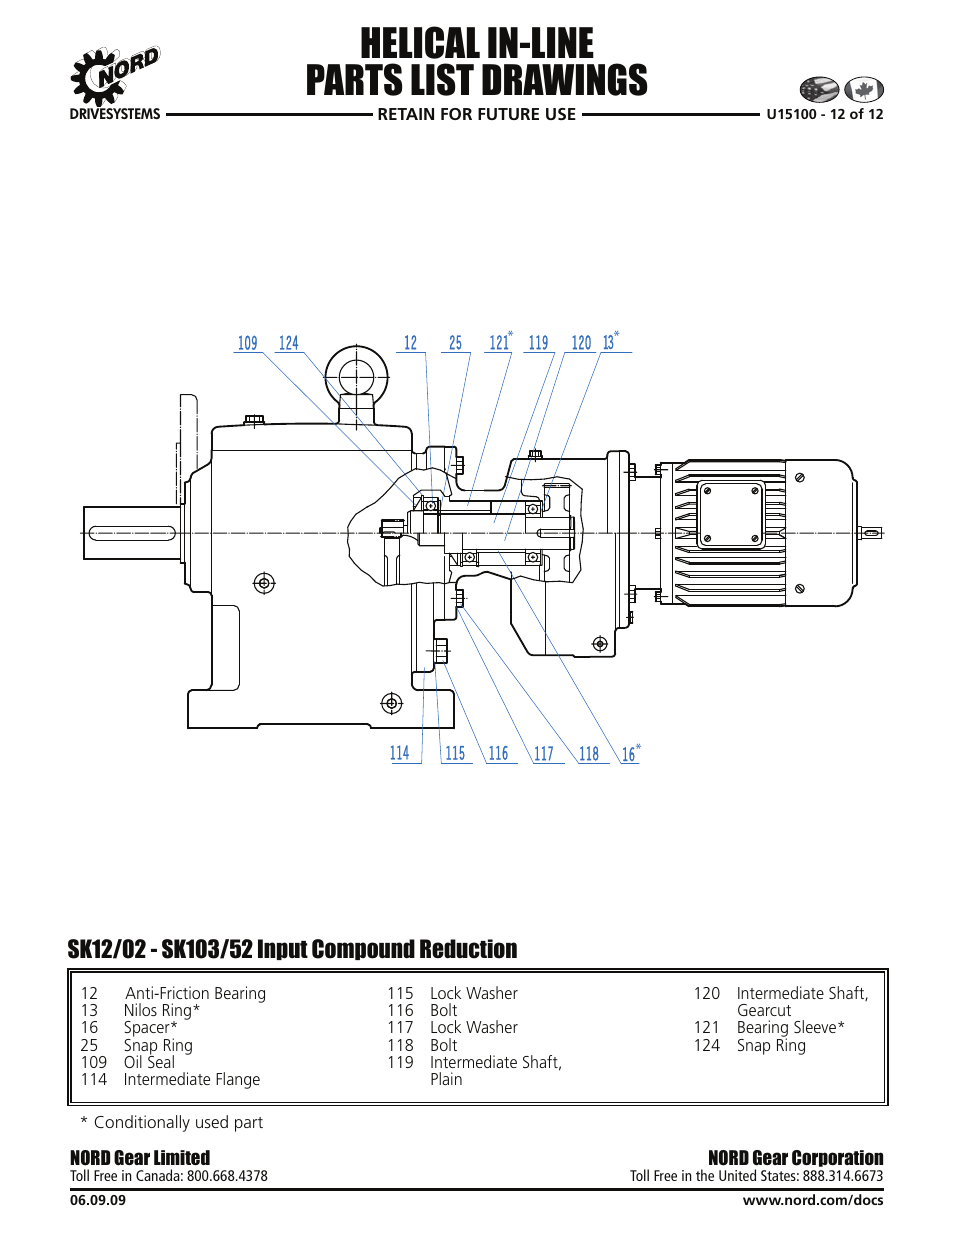 Helical in-line parts list drawings | Viking Pump NORD TSM